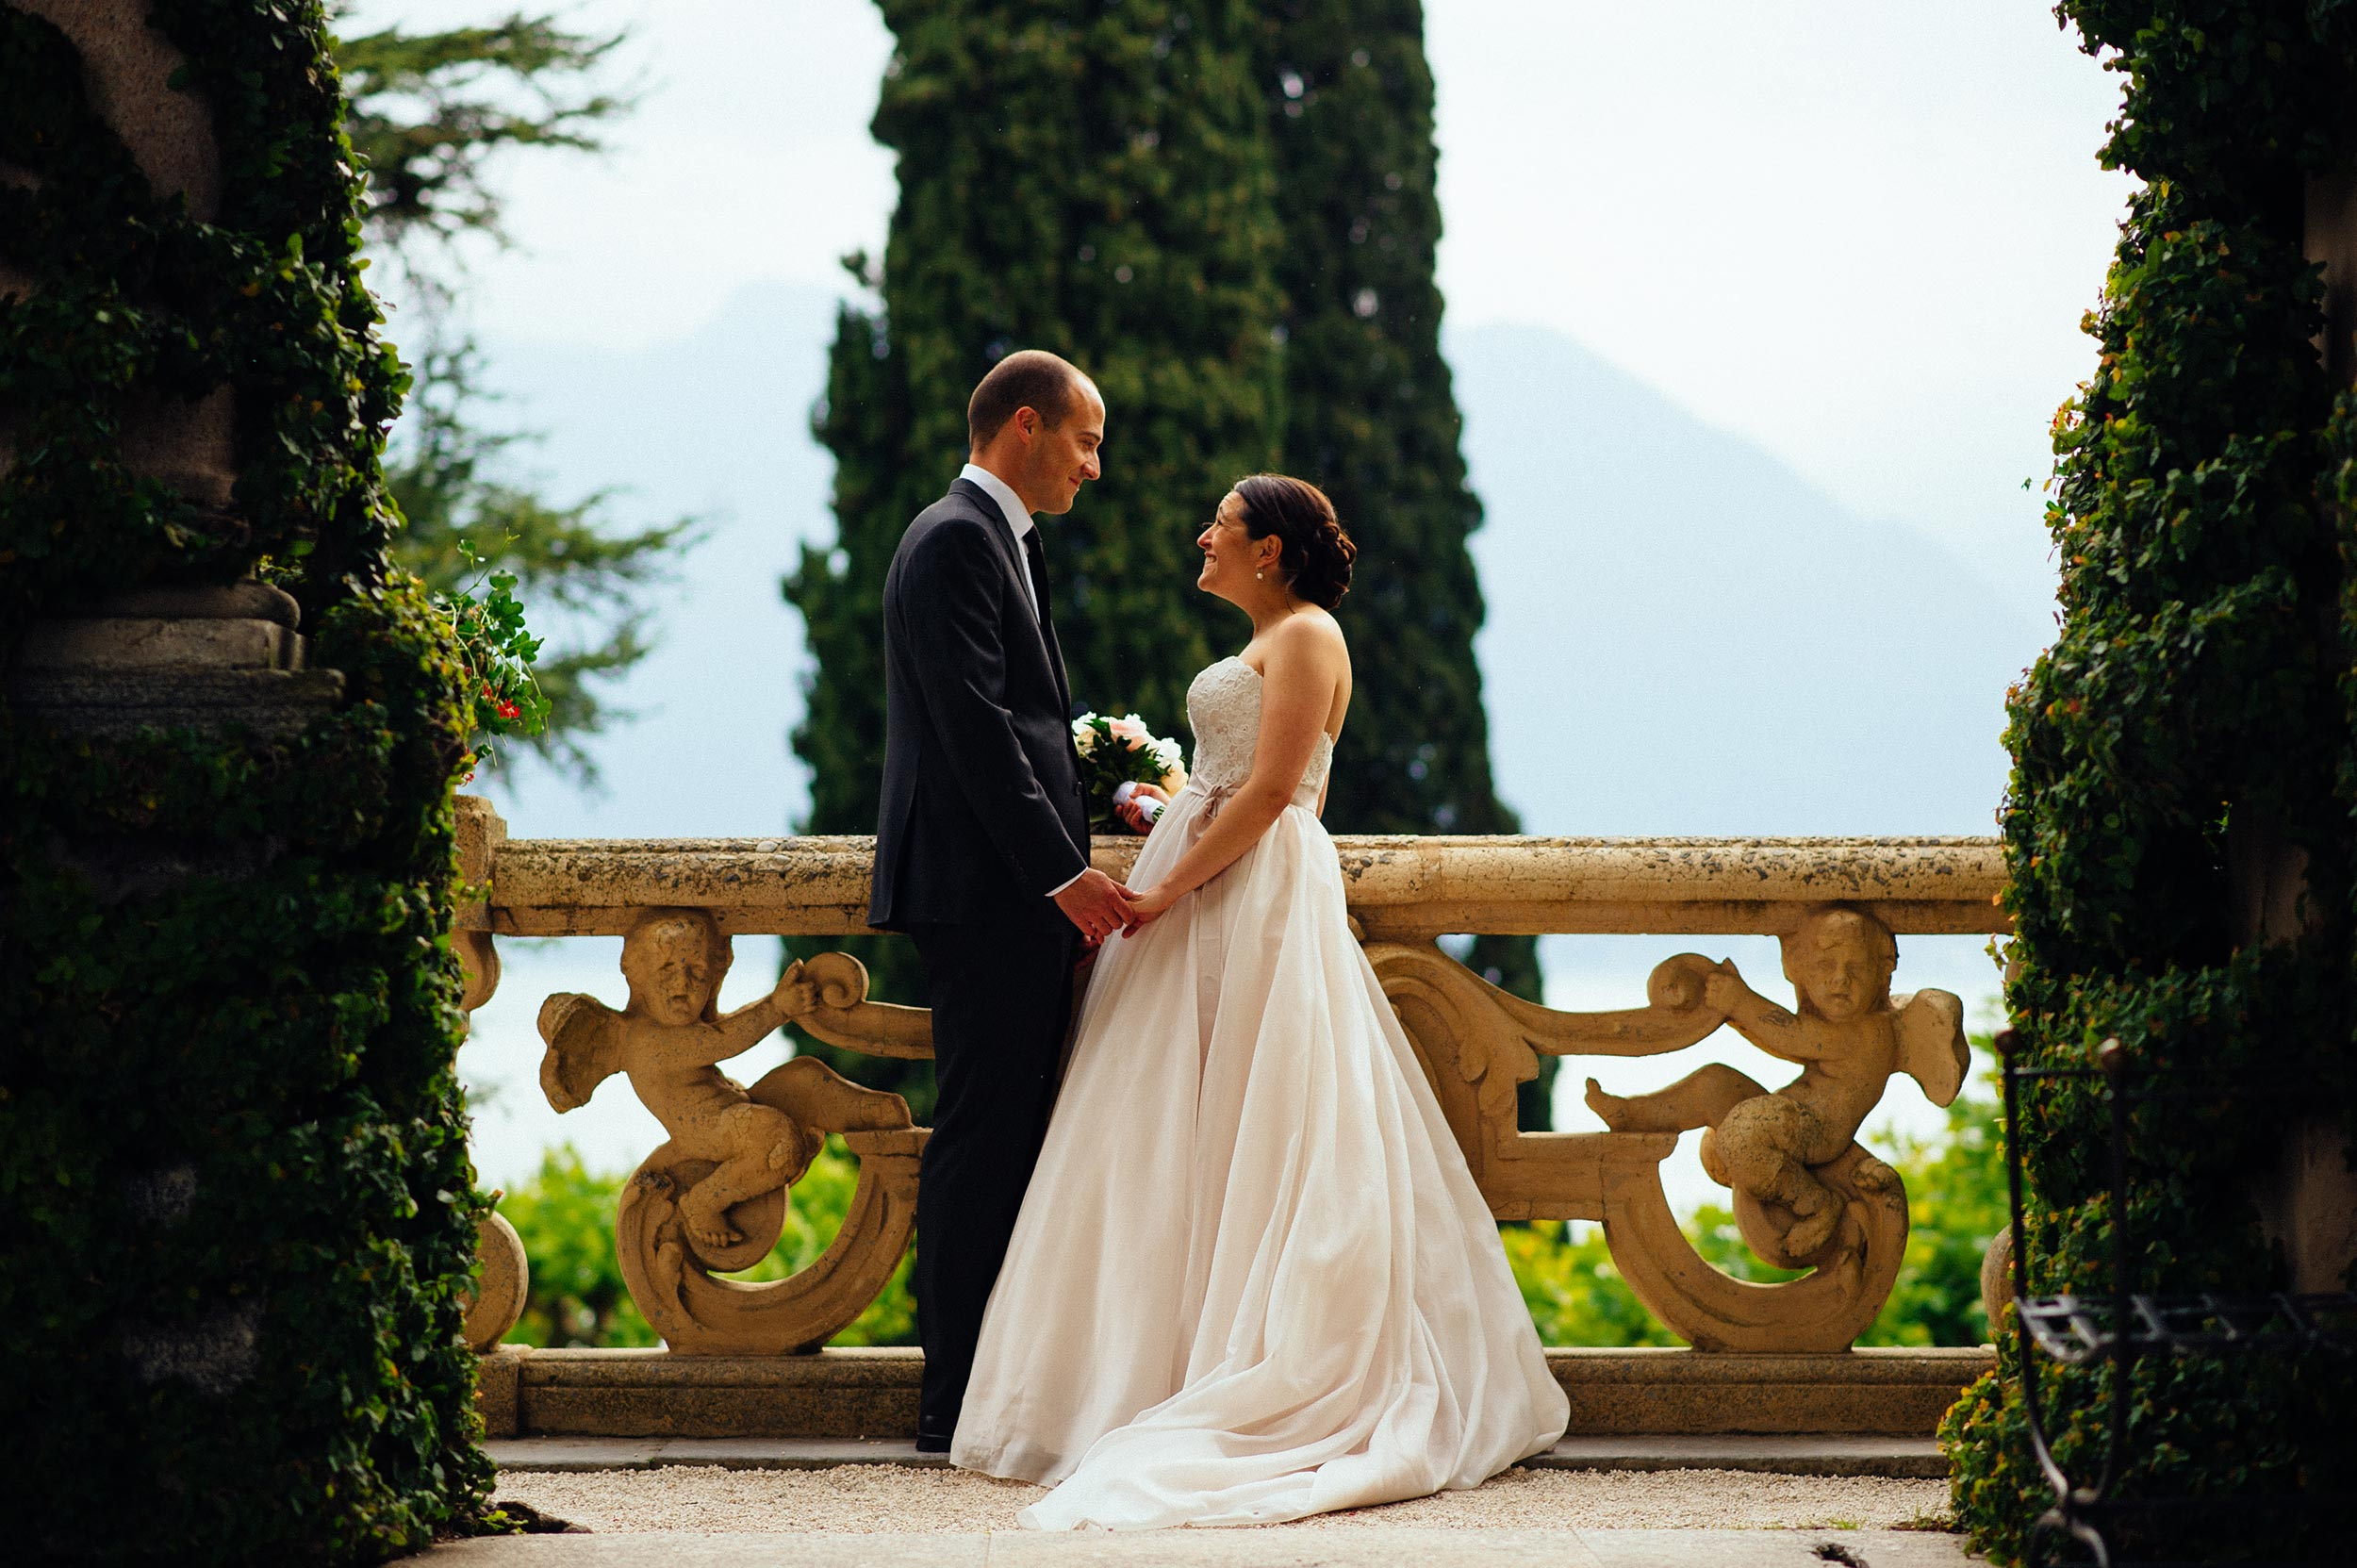 2015-Jon-Lauren-Bellagio-Lake-Como-Wedding-Photographer-Italy-Alessandro-Avenali-35.jpg